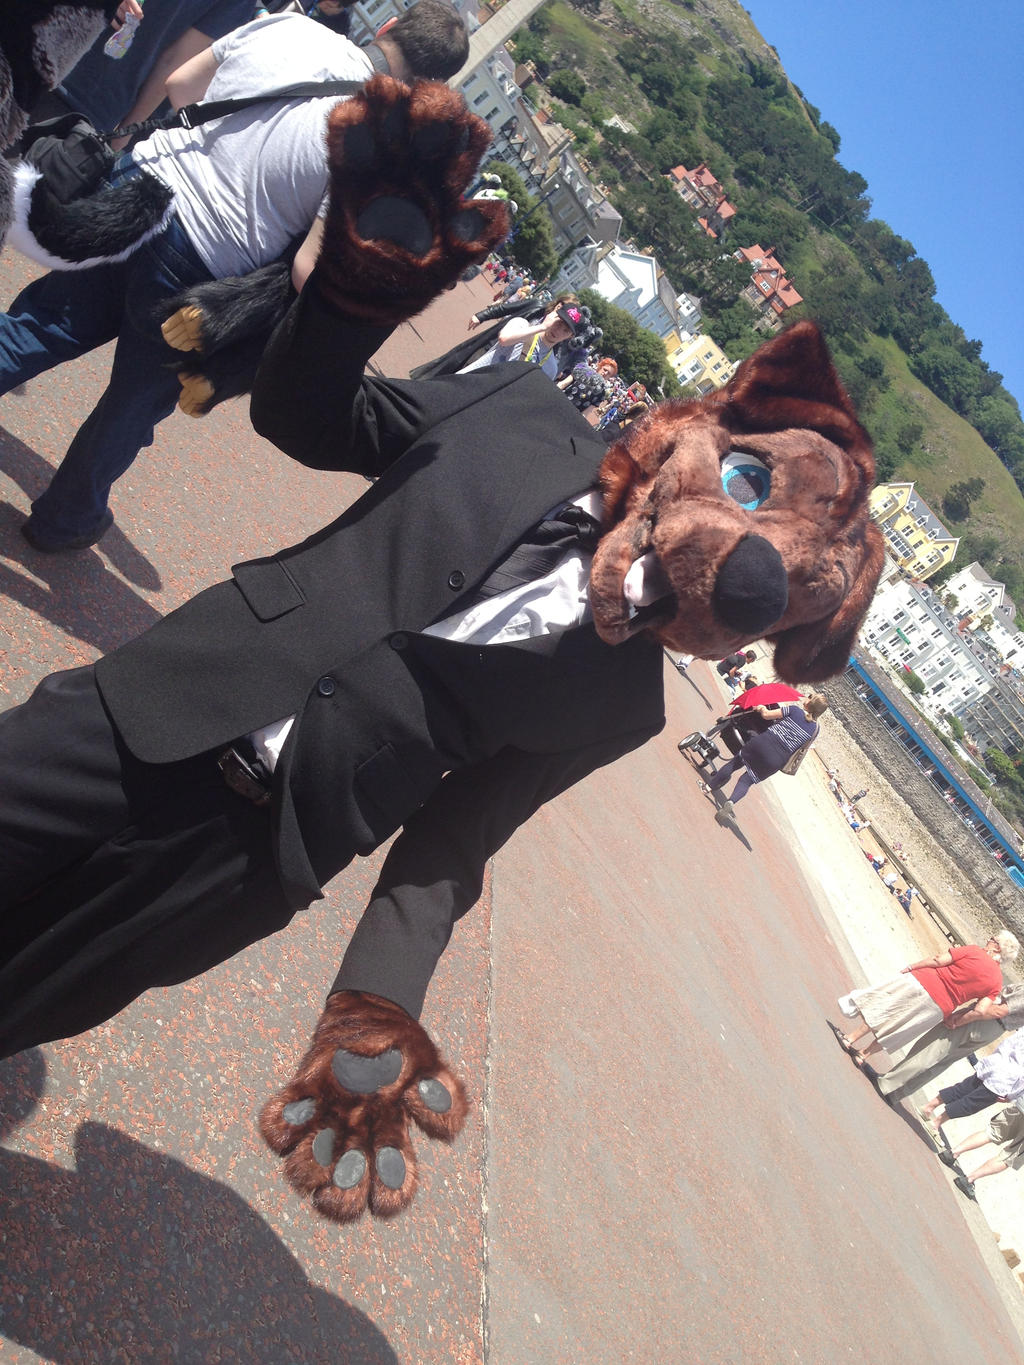 llandudno fur meet july 2014 slanty shanty by